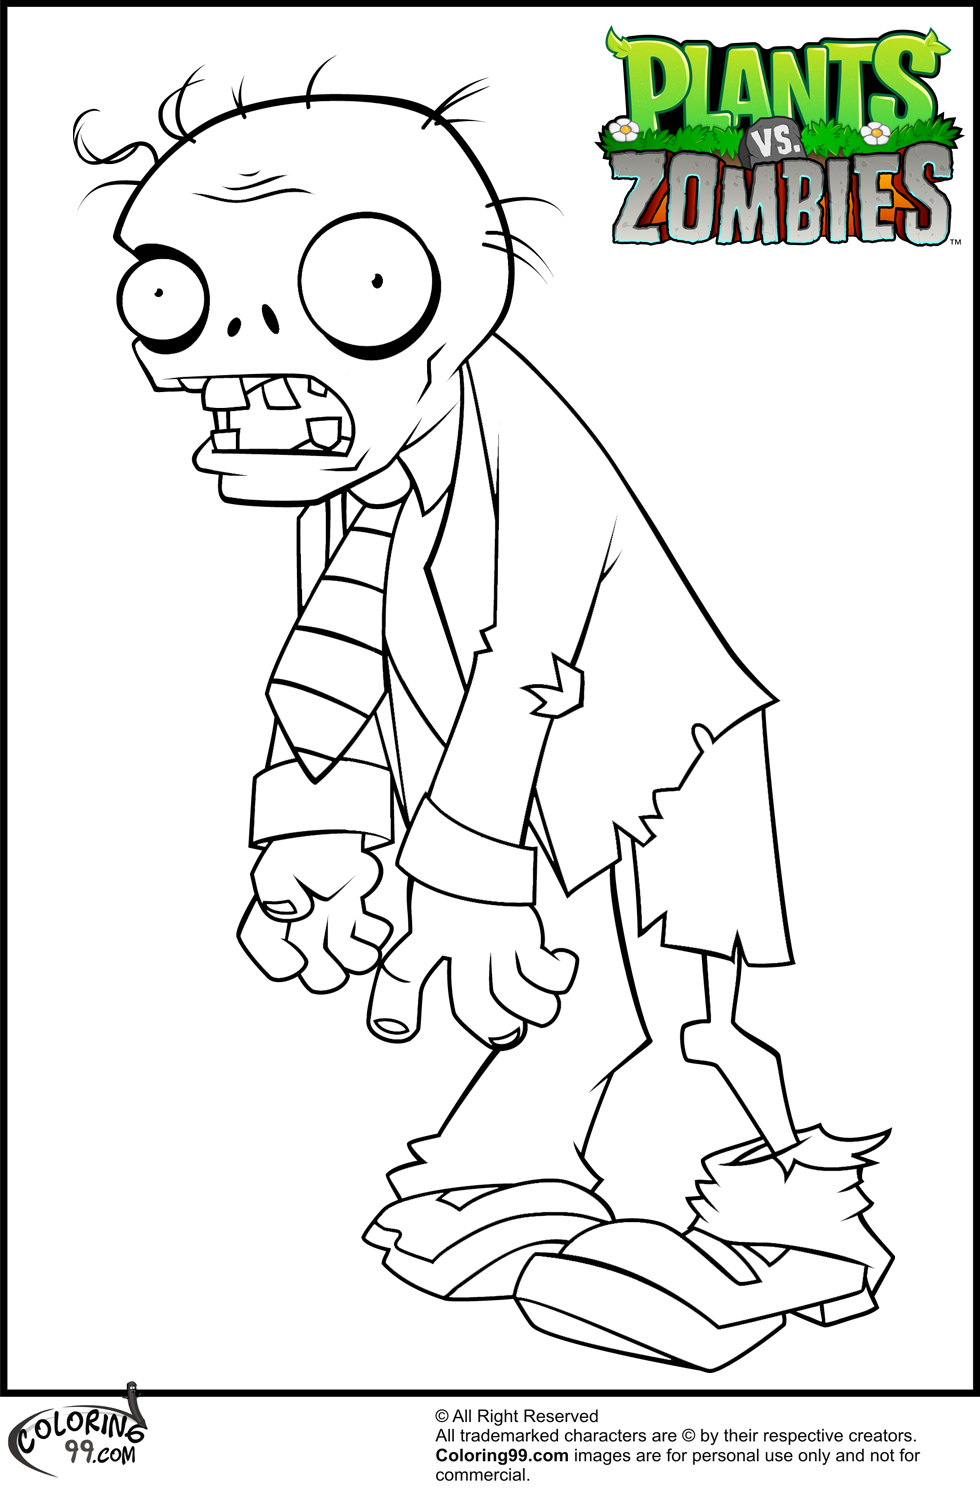 Coloring Pages For Plants Vs Zombies : Plants vs zombies coloring pages team colors